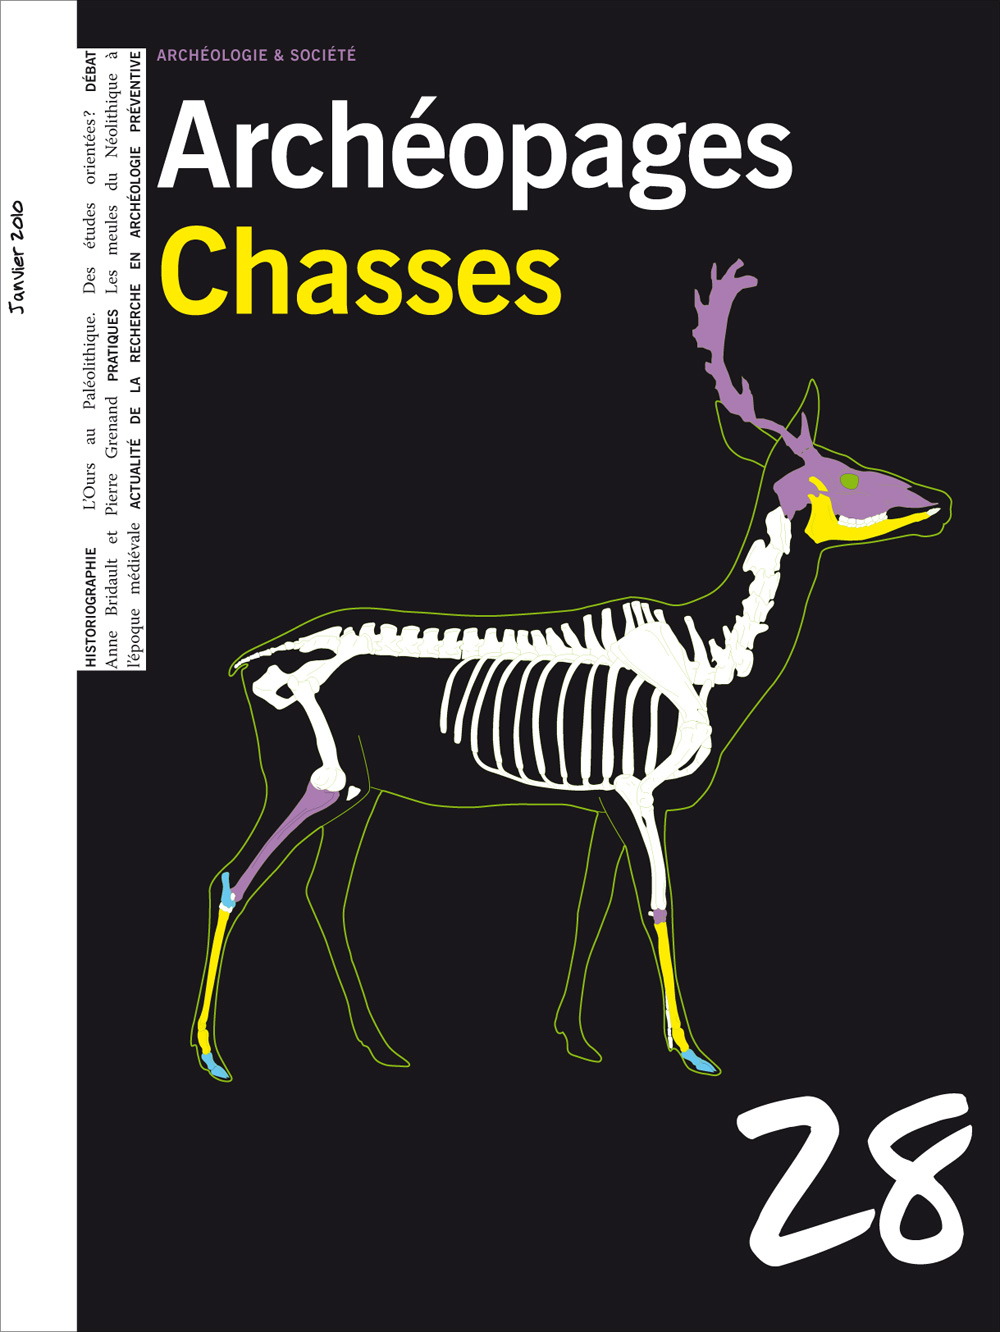 Archéopages n°28 : Chasses